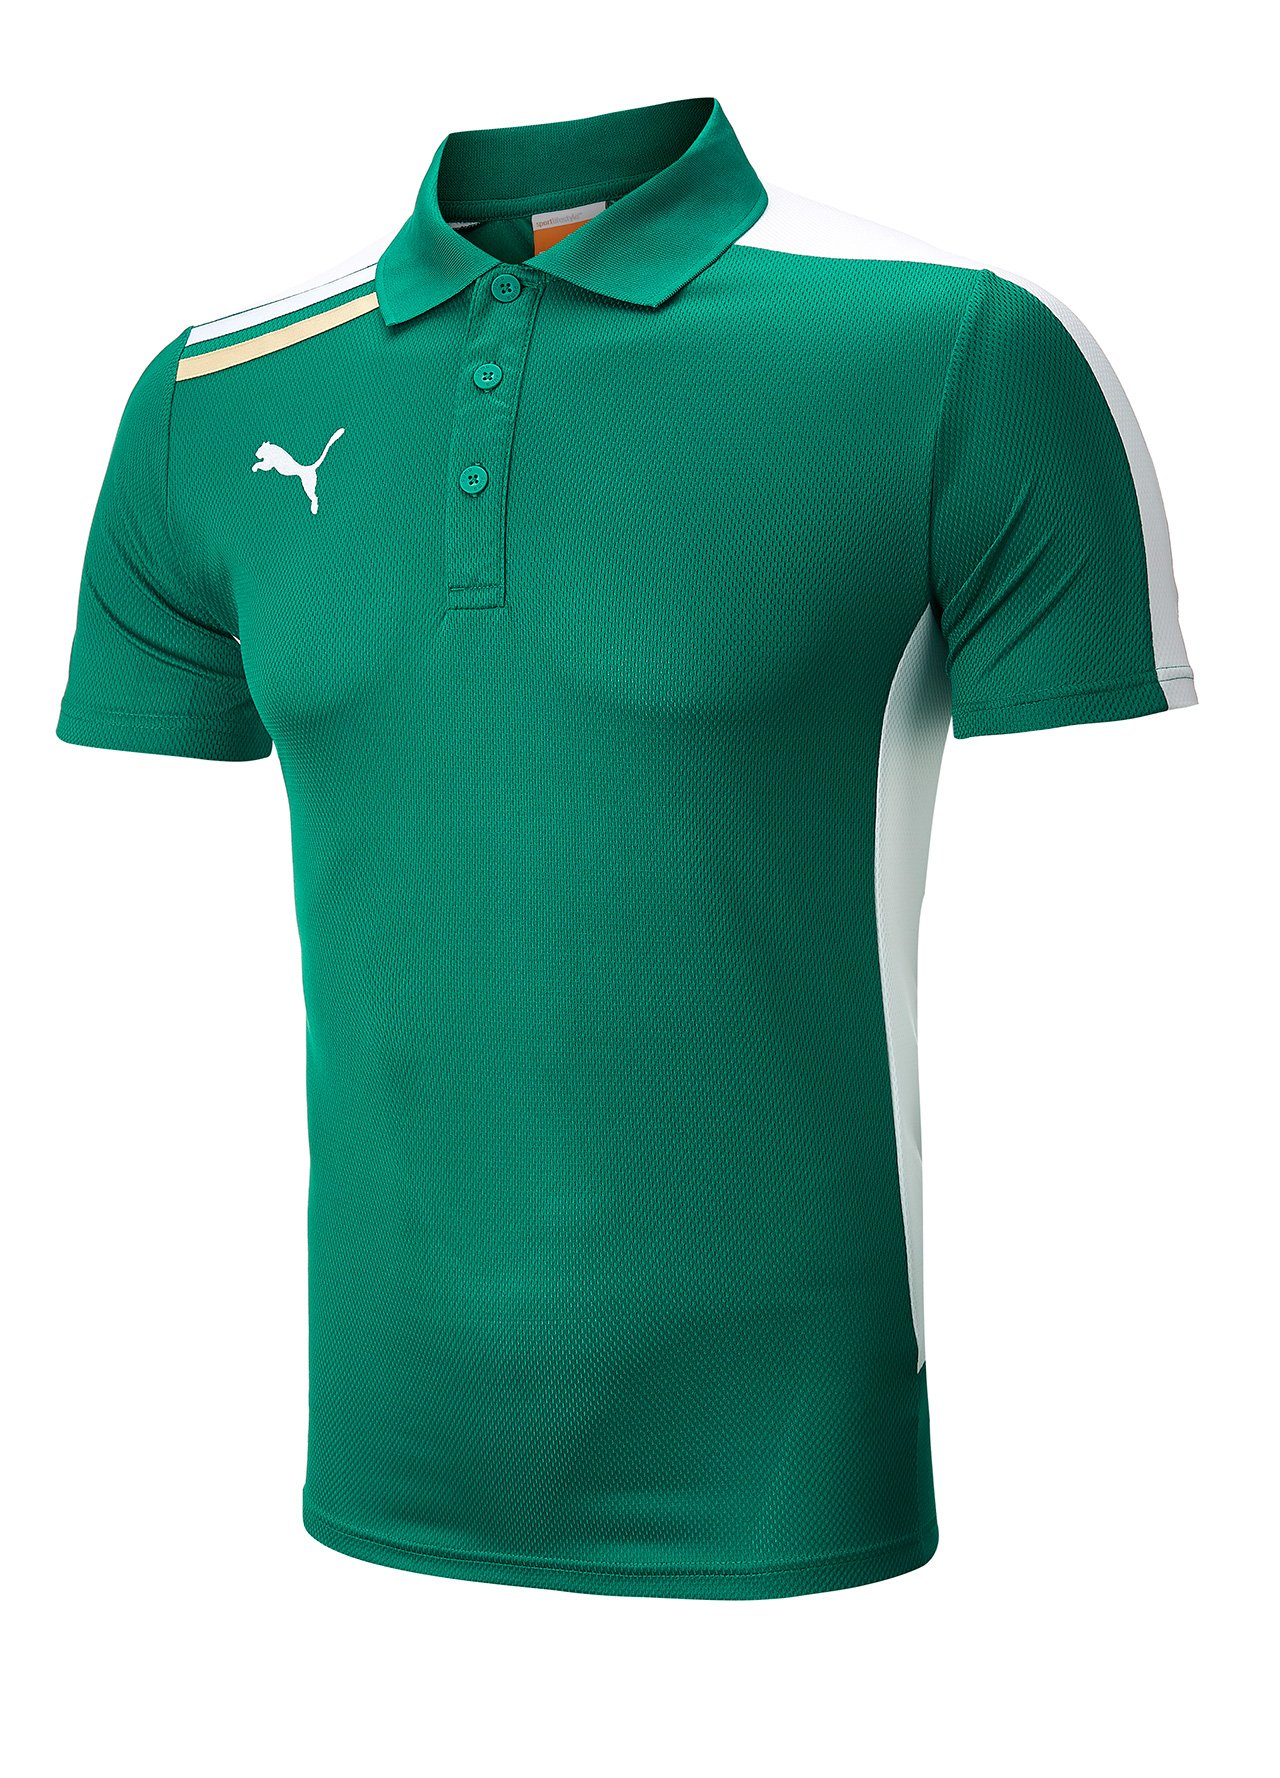 Puma esito golf polo shirt green medium ebay